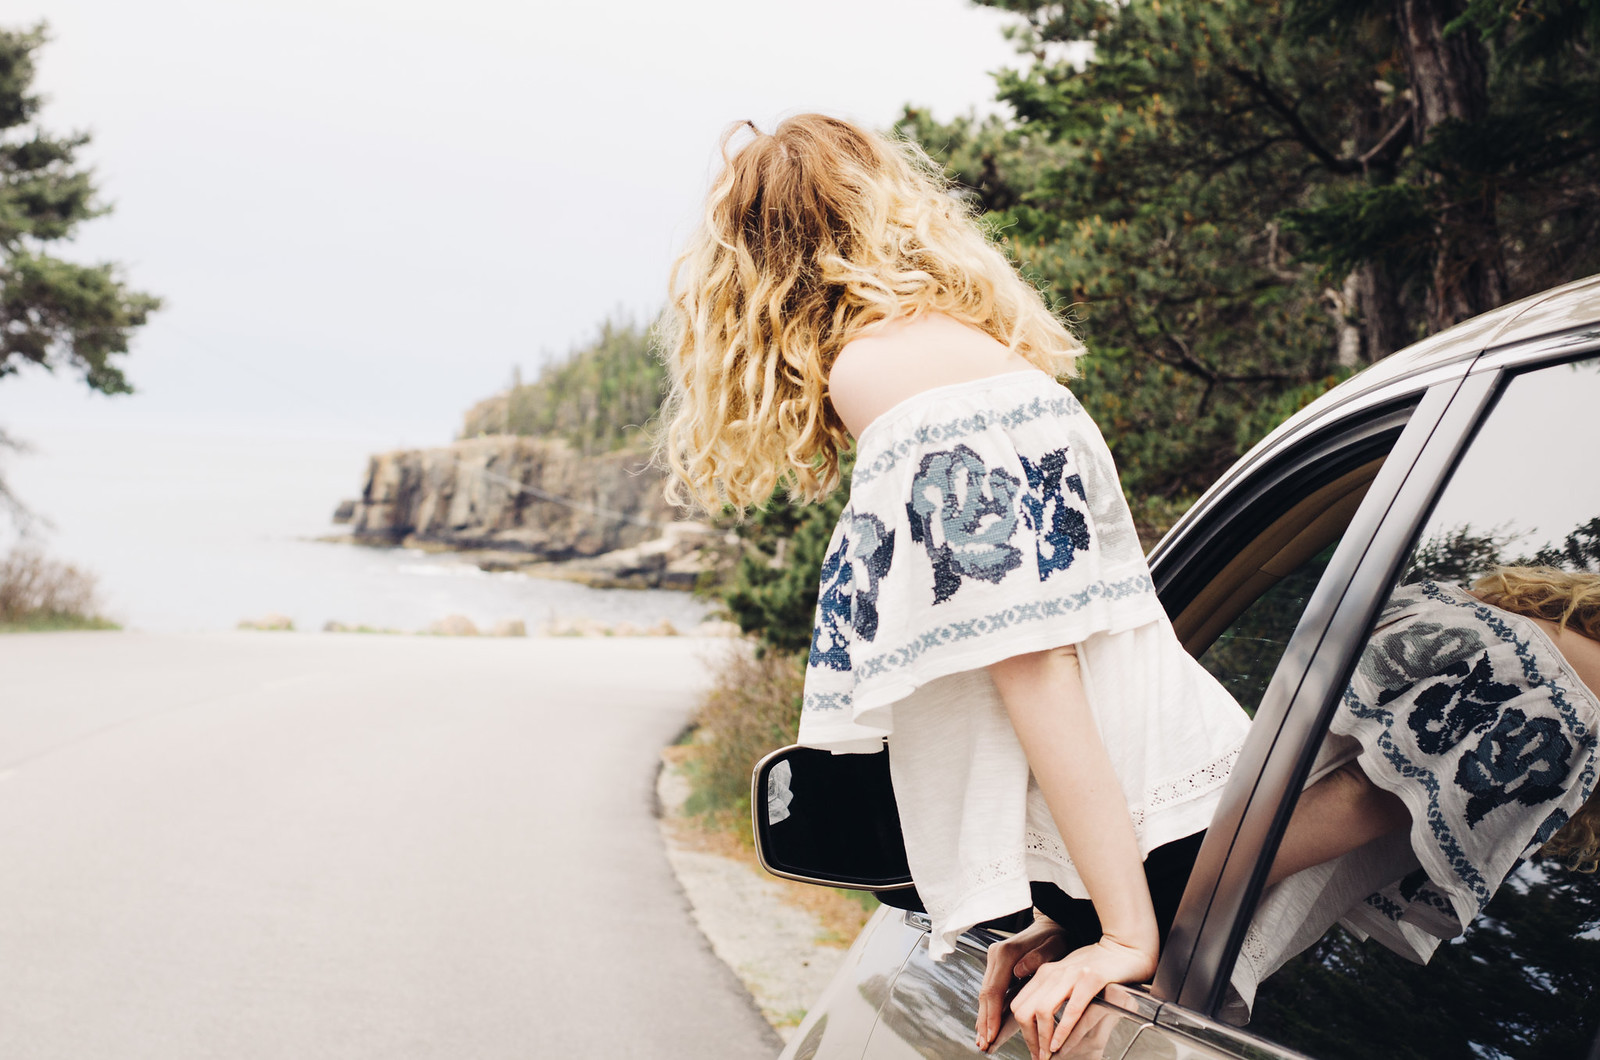 Road Trip! In Maine in Free People on juliettelaura.blogspot.com